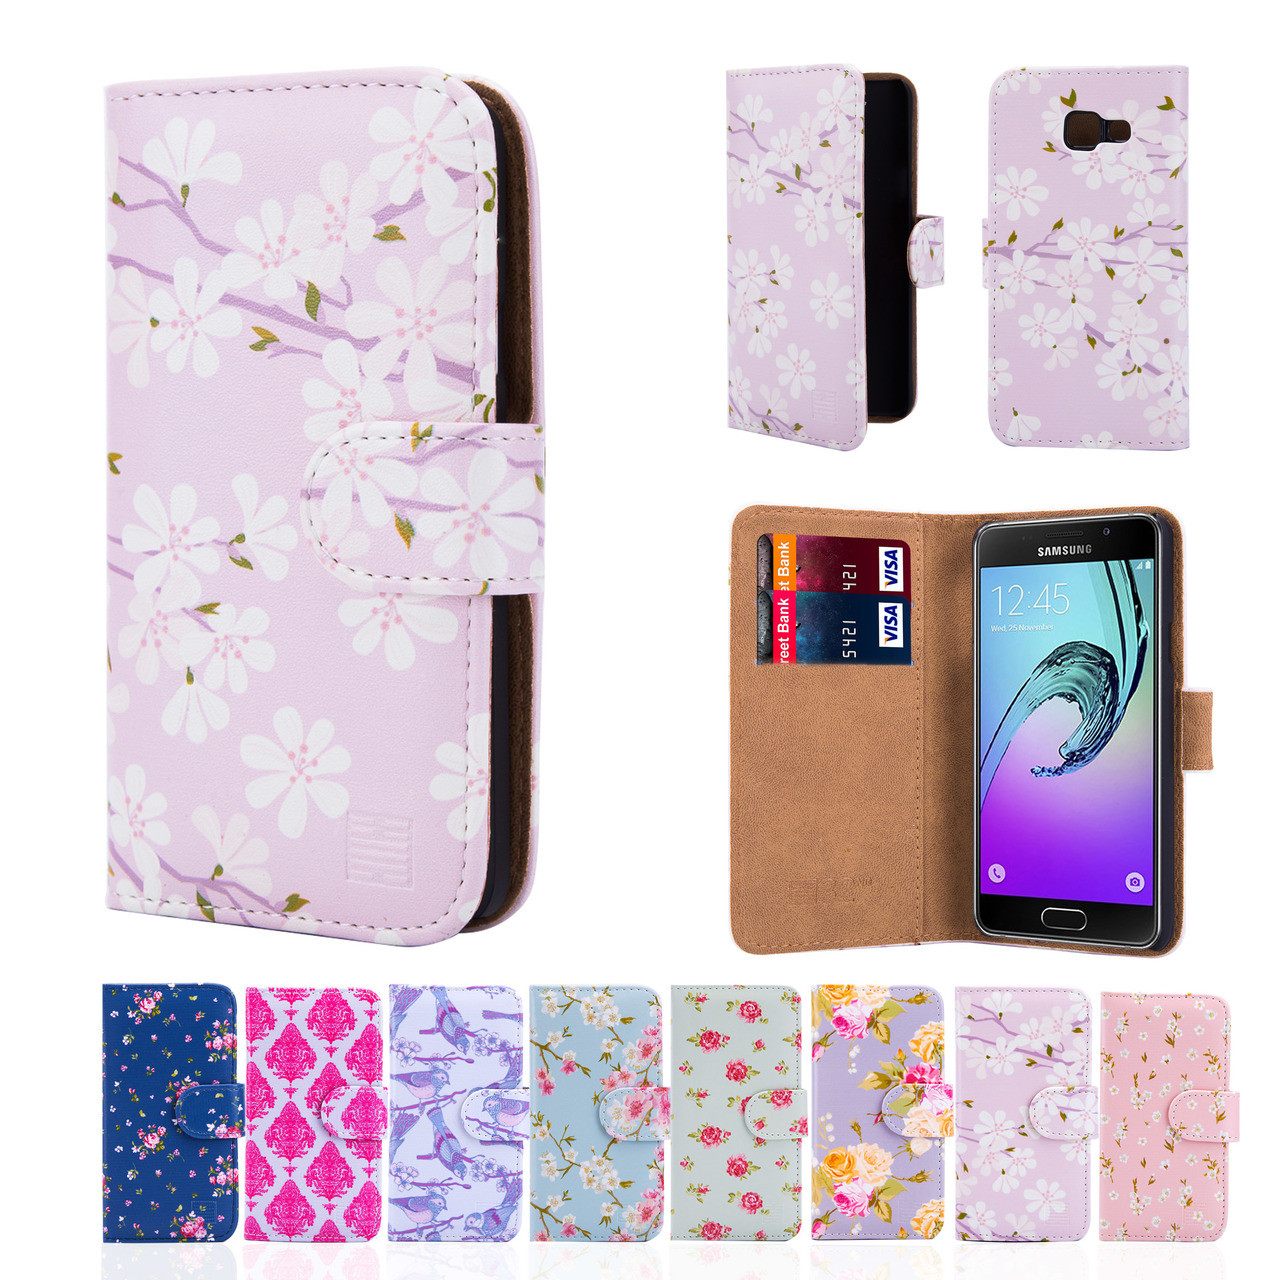 hoesje samsung a3 2016 action